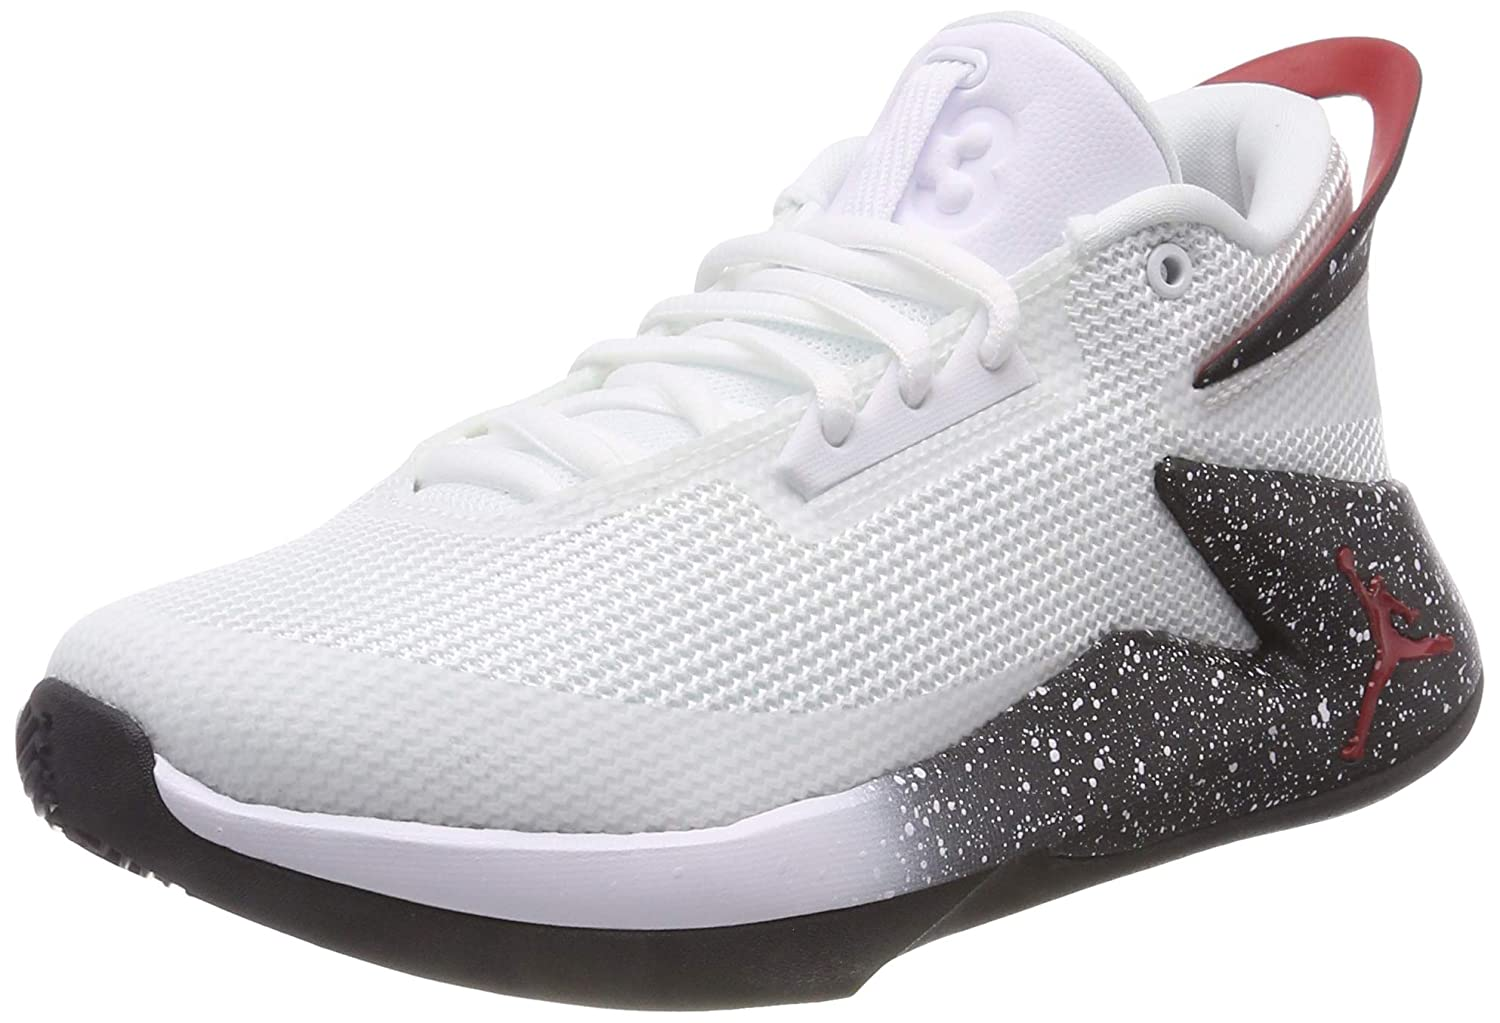 new product 905e9 66d53 NIKE Boys  Jordan Fly Lockdown (Gs) Basketball Shoes AO1547-100